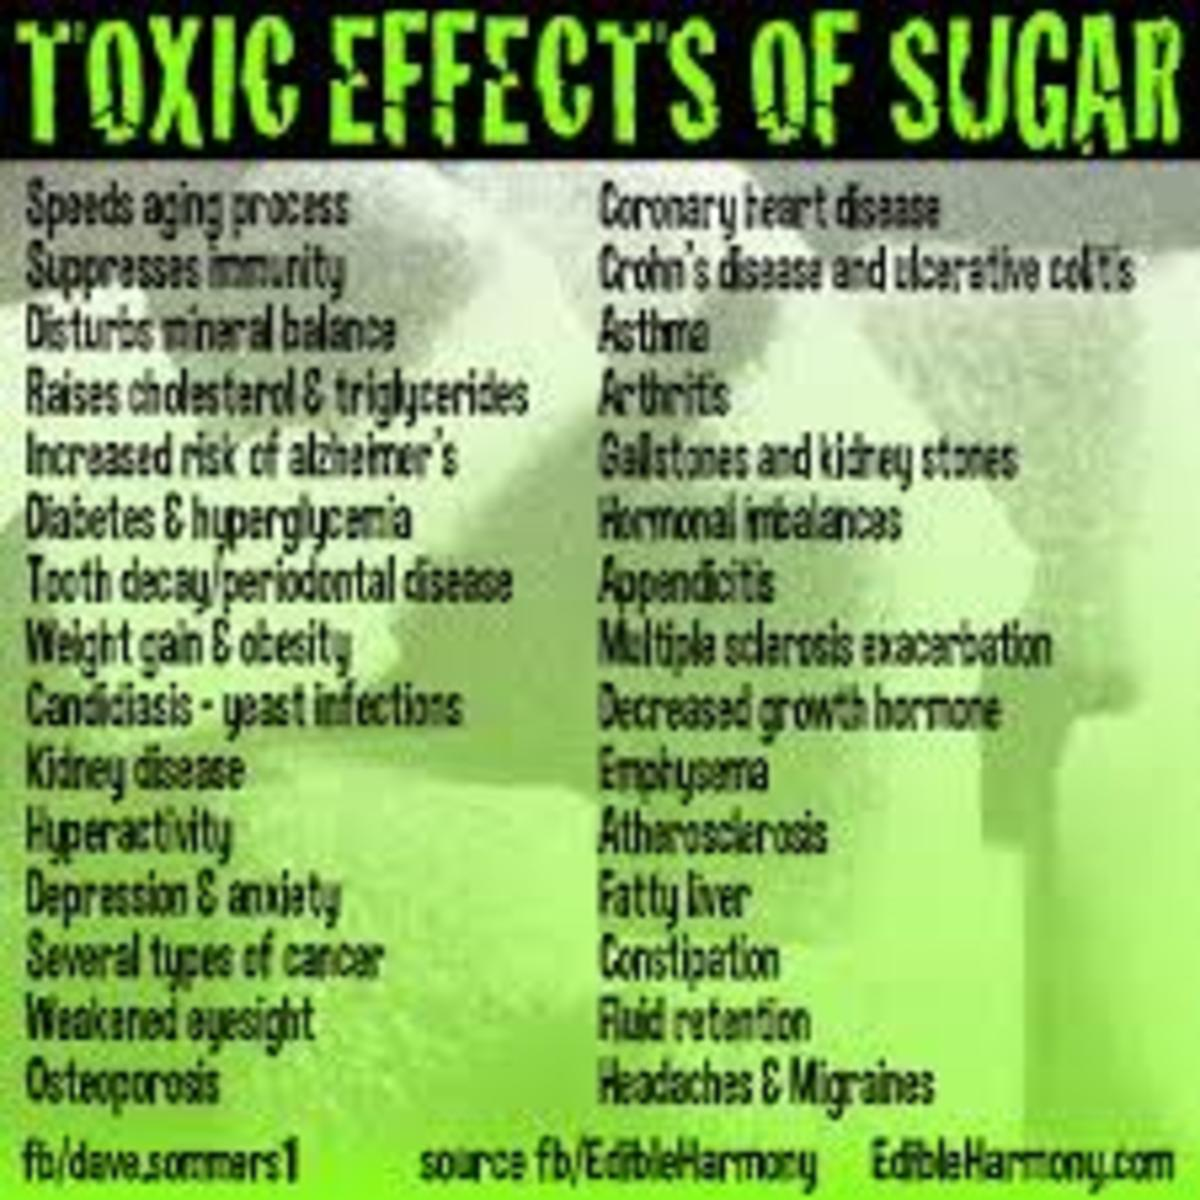 When fat is taken out of processed foods, sugar is added to give them flavor. Too much sugar consumption may not only lead to tooth decay and weight gain, it also increases the risk of many diseases.